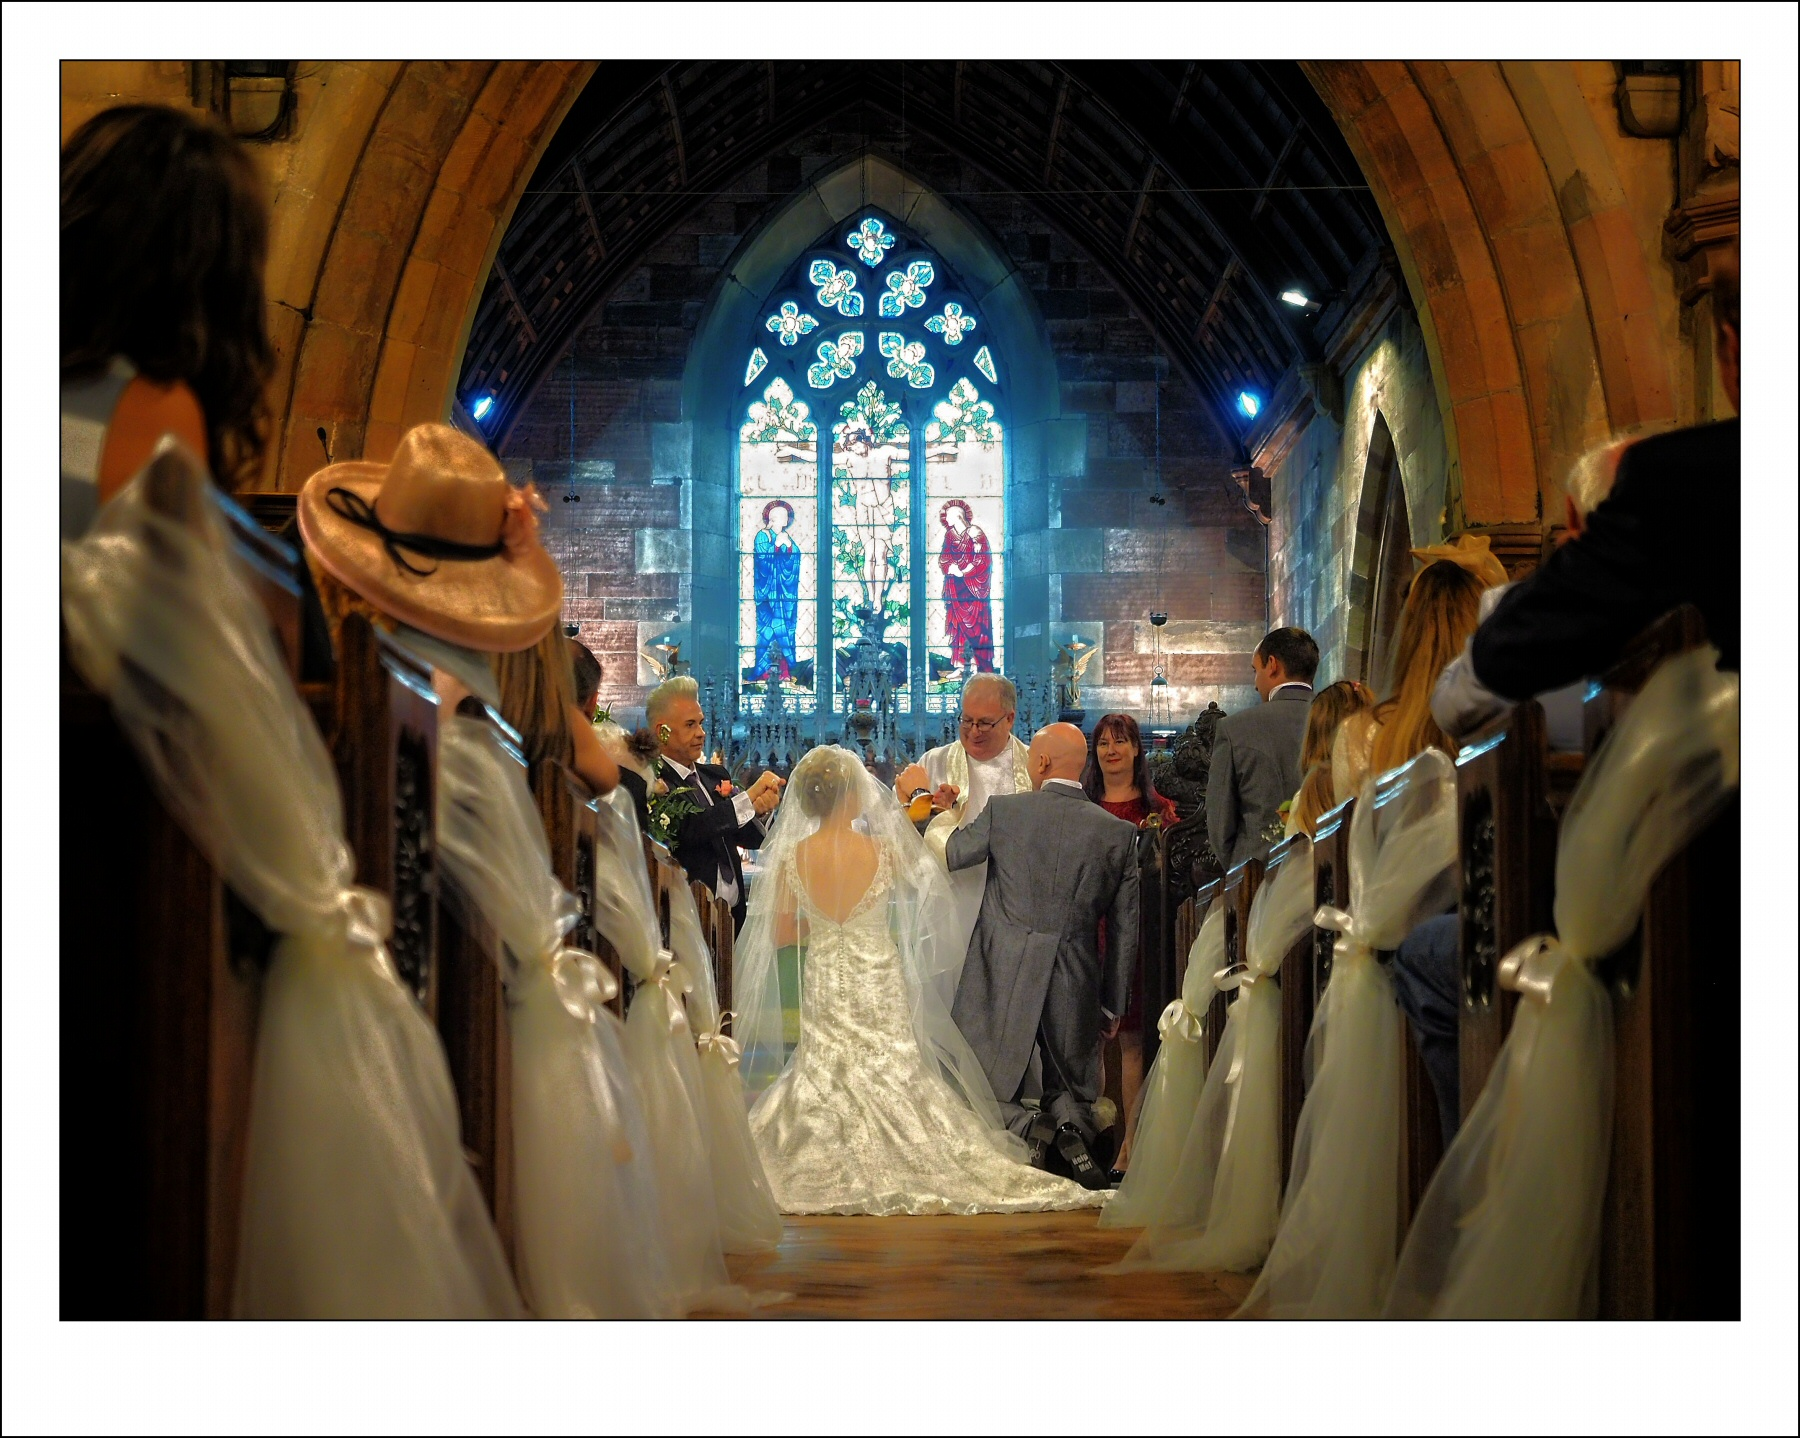 Wedding photographer near deeside